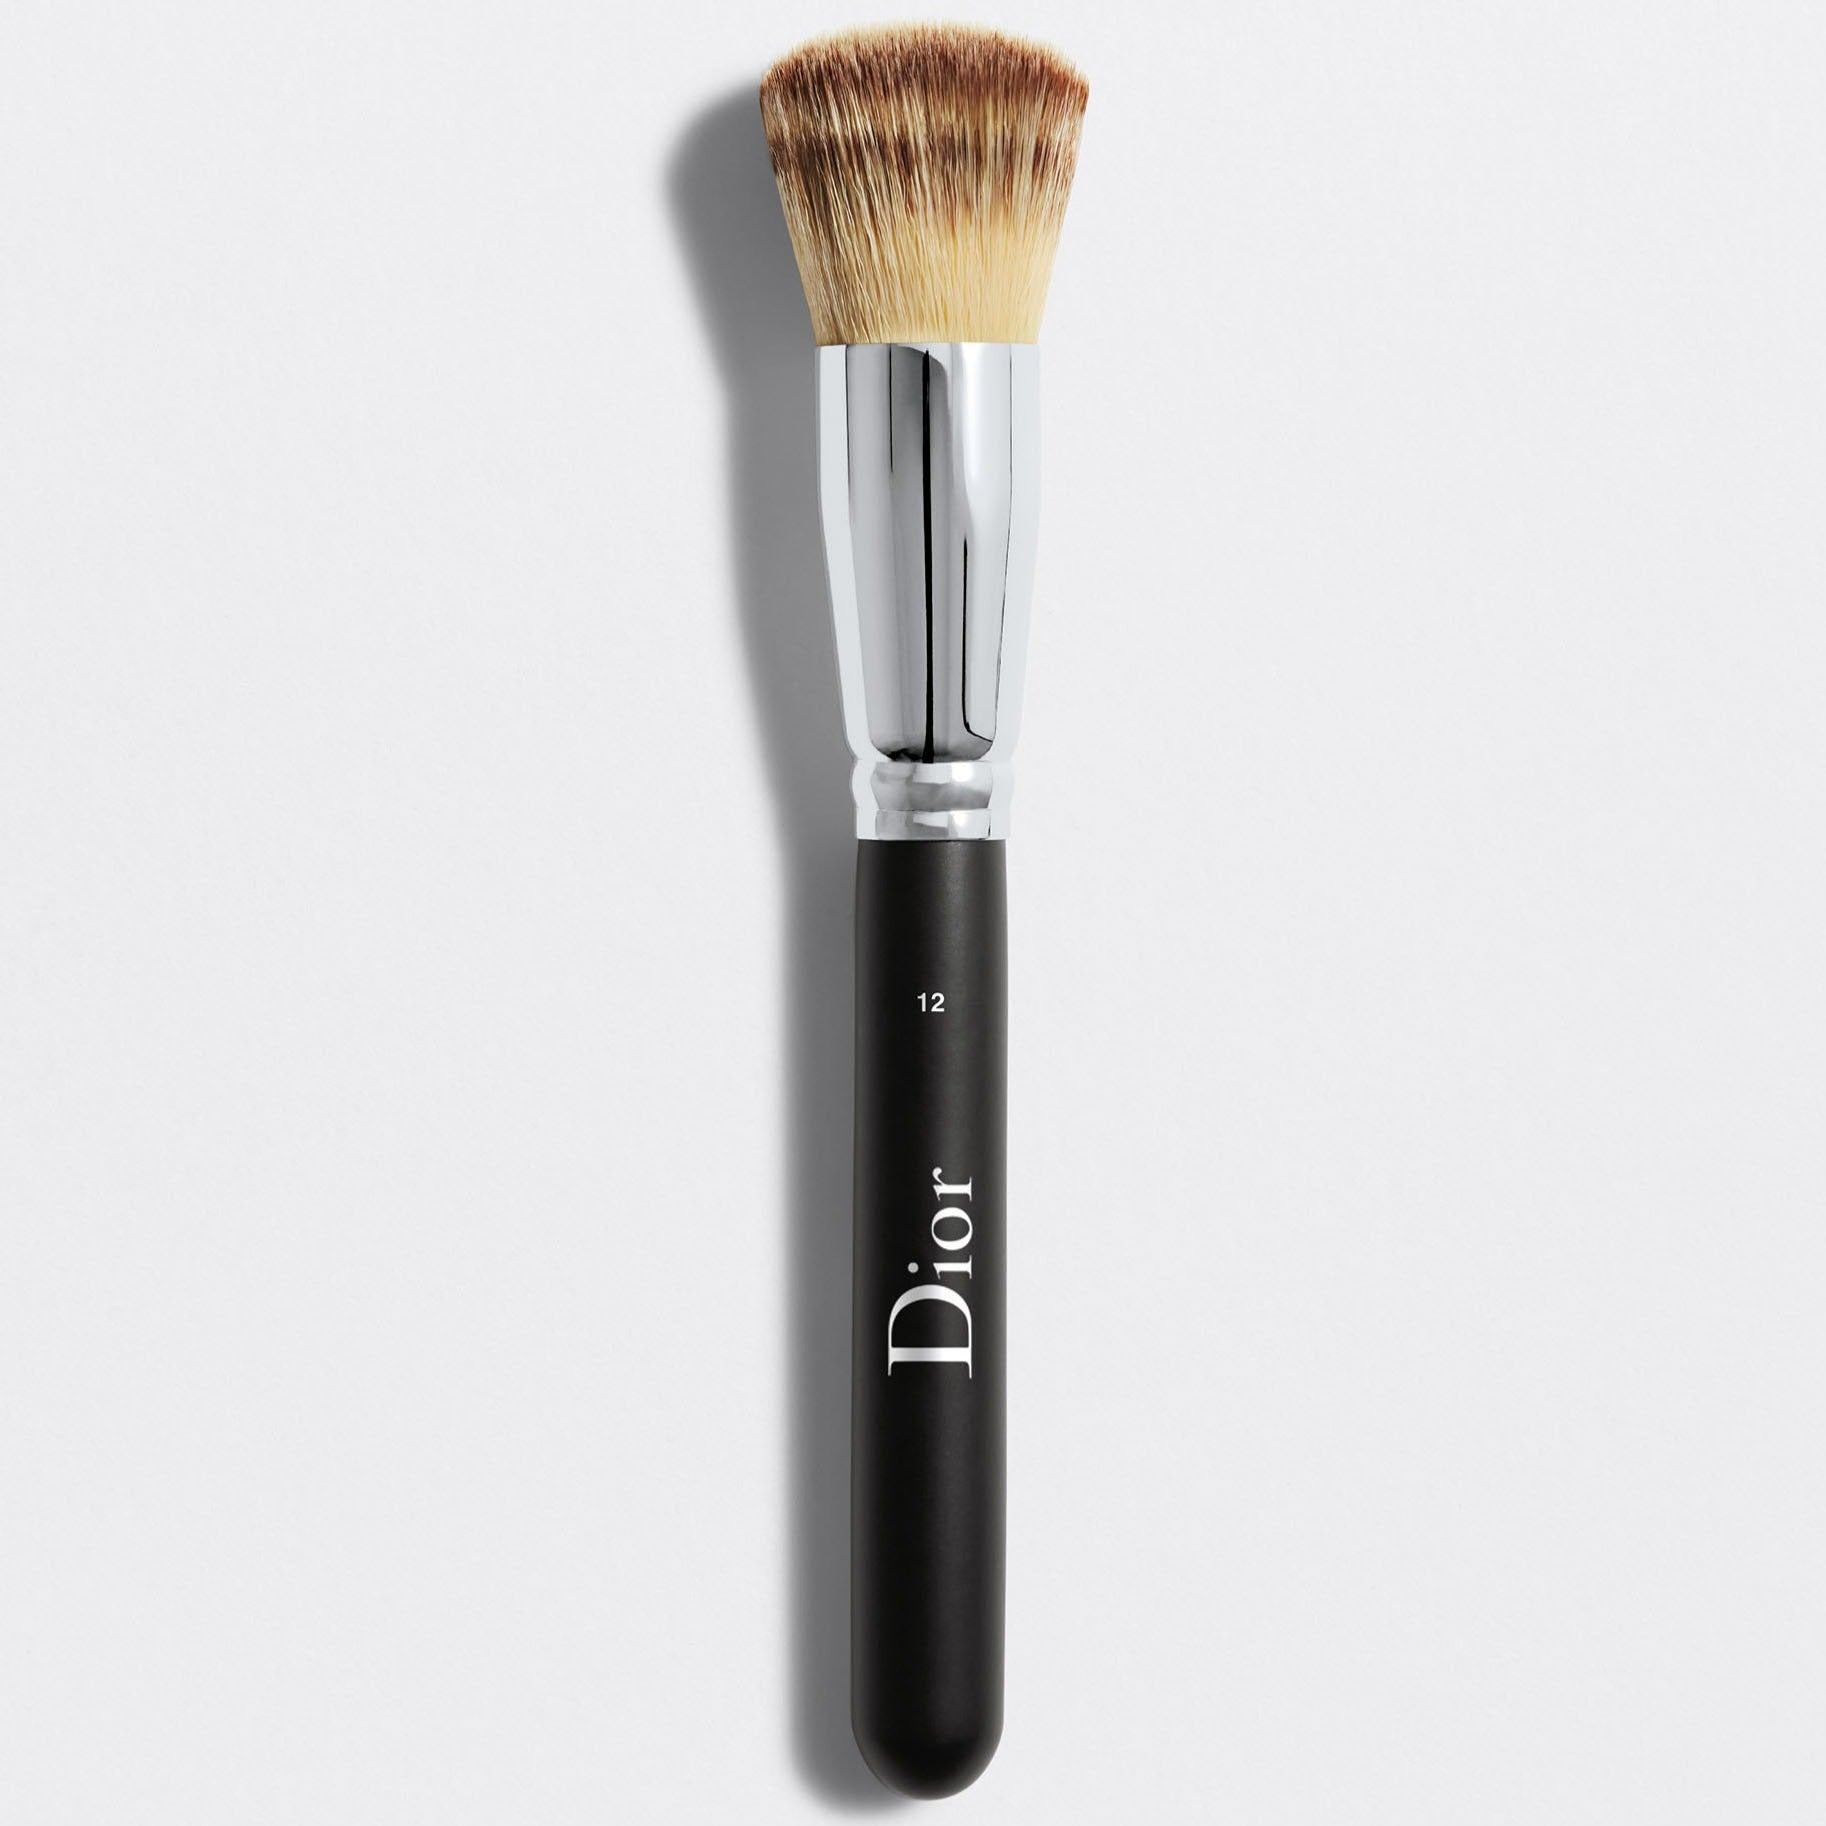 DIOR BACKSTAGE FULL COVERAGE FLUID FOUNDATION BRUSH N° 12 | Dior backstage full coverage fluid foundation brush n°12